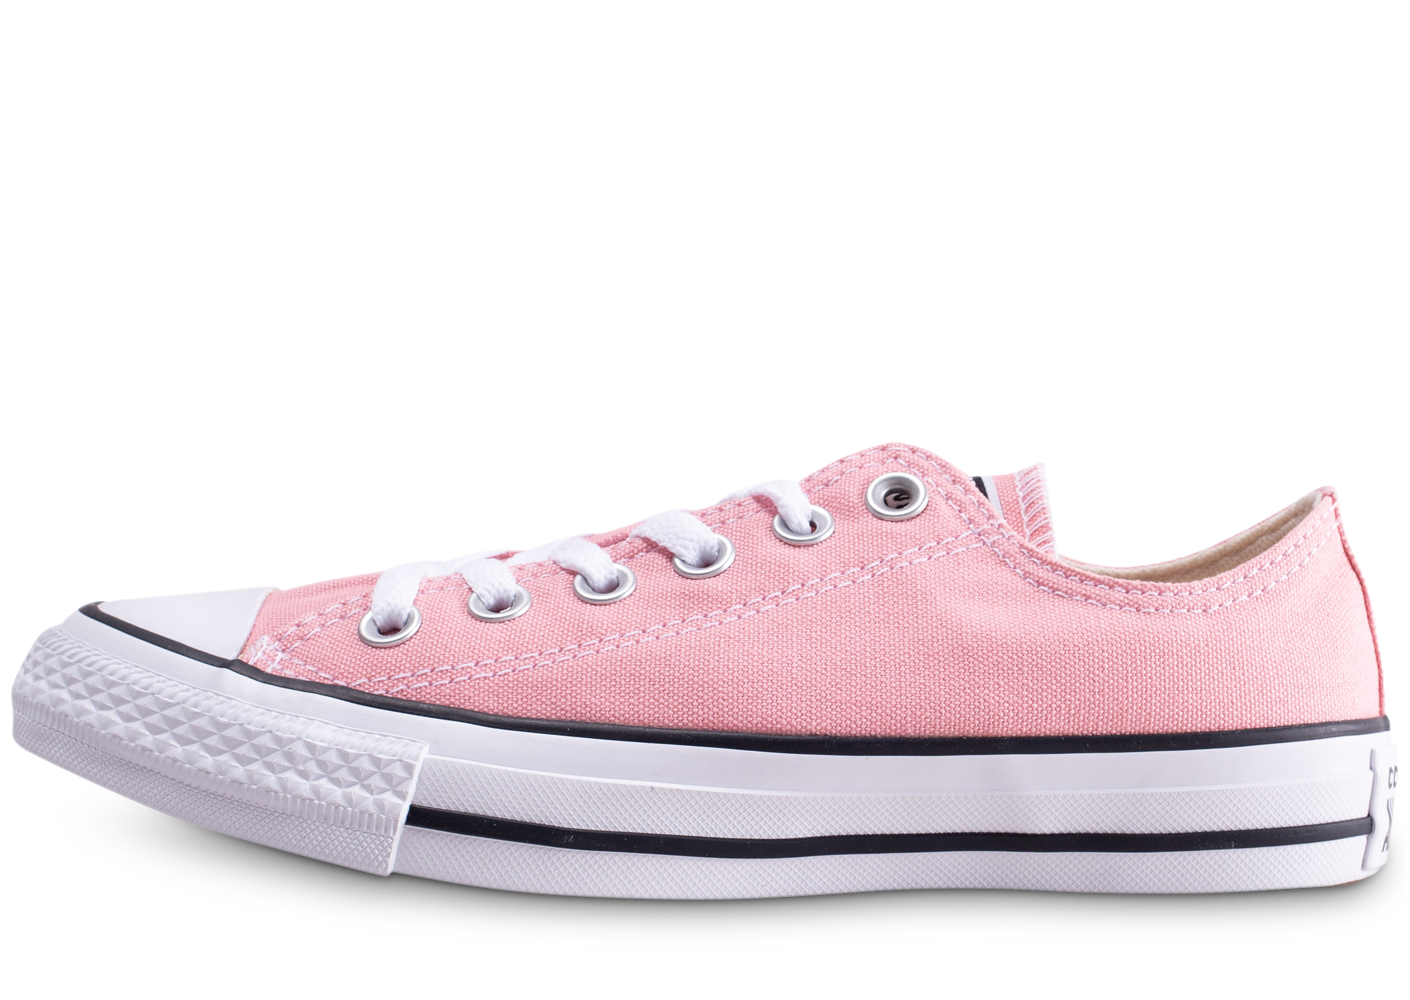 Converse chuck taylor all star low rose femme...